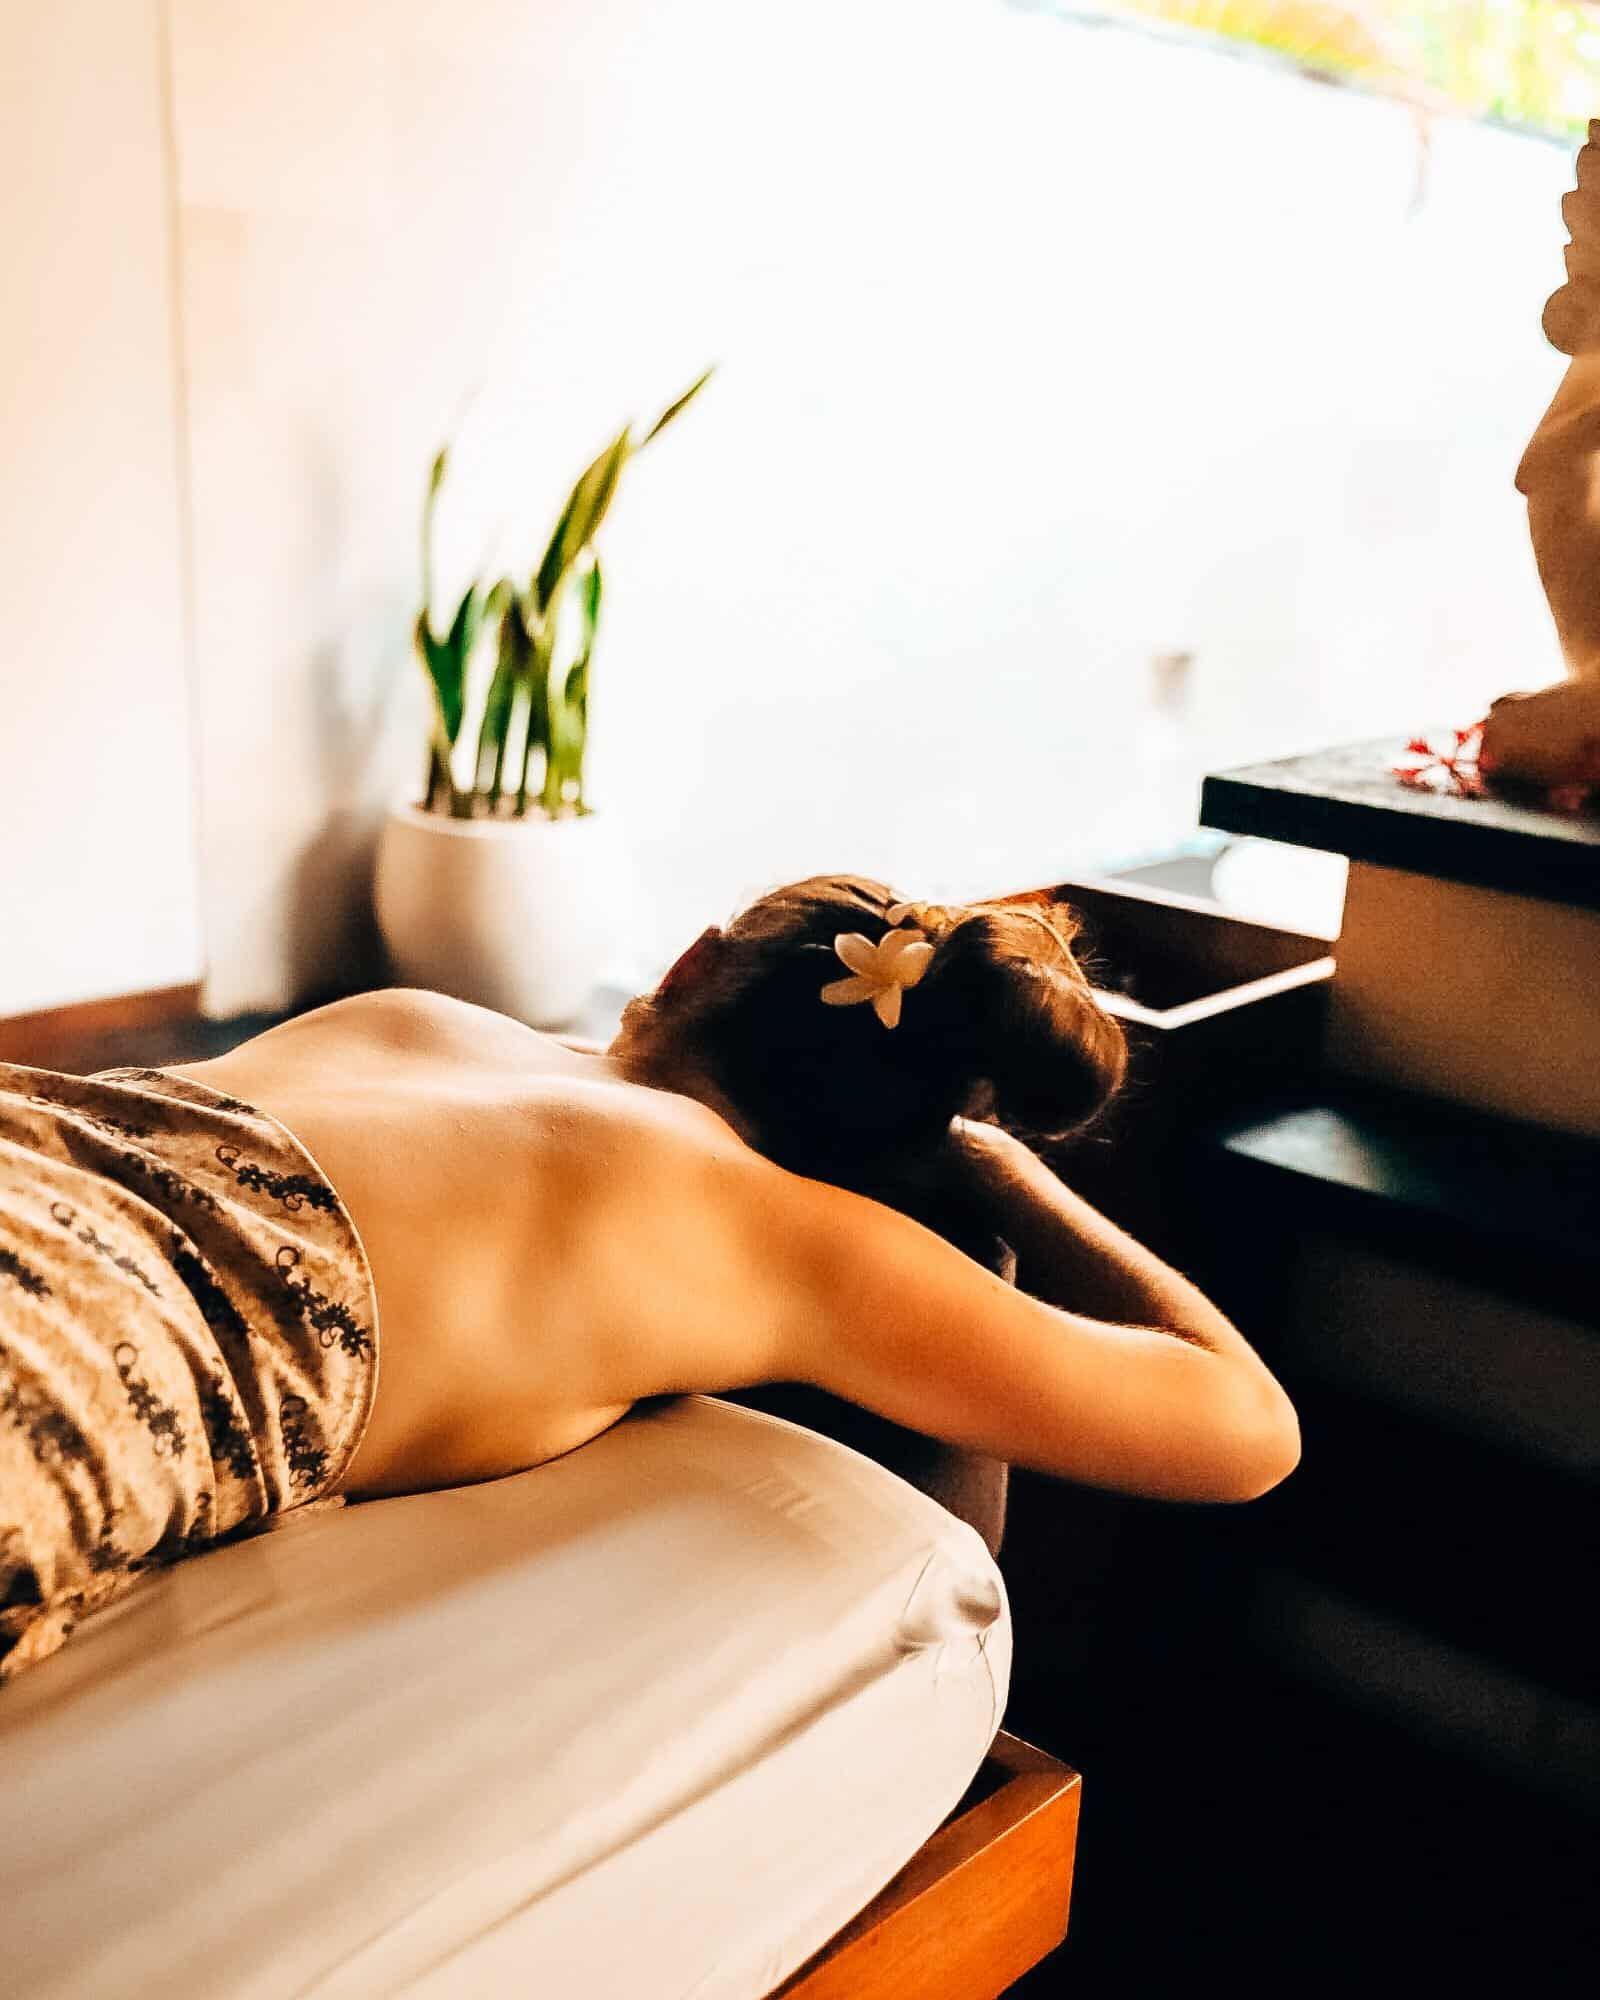 Balinese Massage at Nusa Dua Beach Resort and Spa - The Next Trip